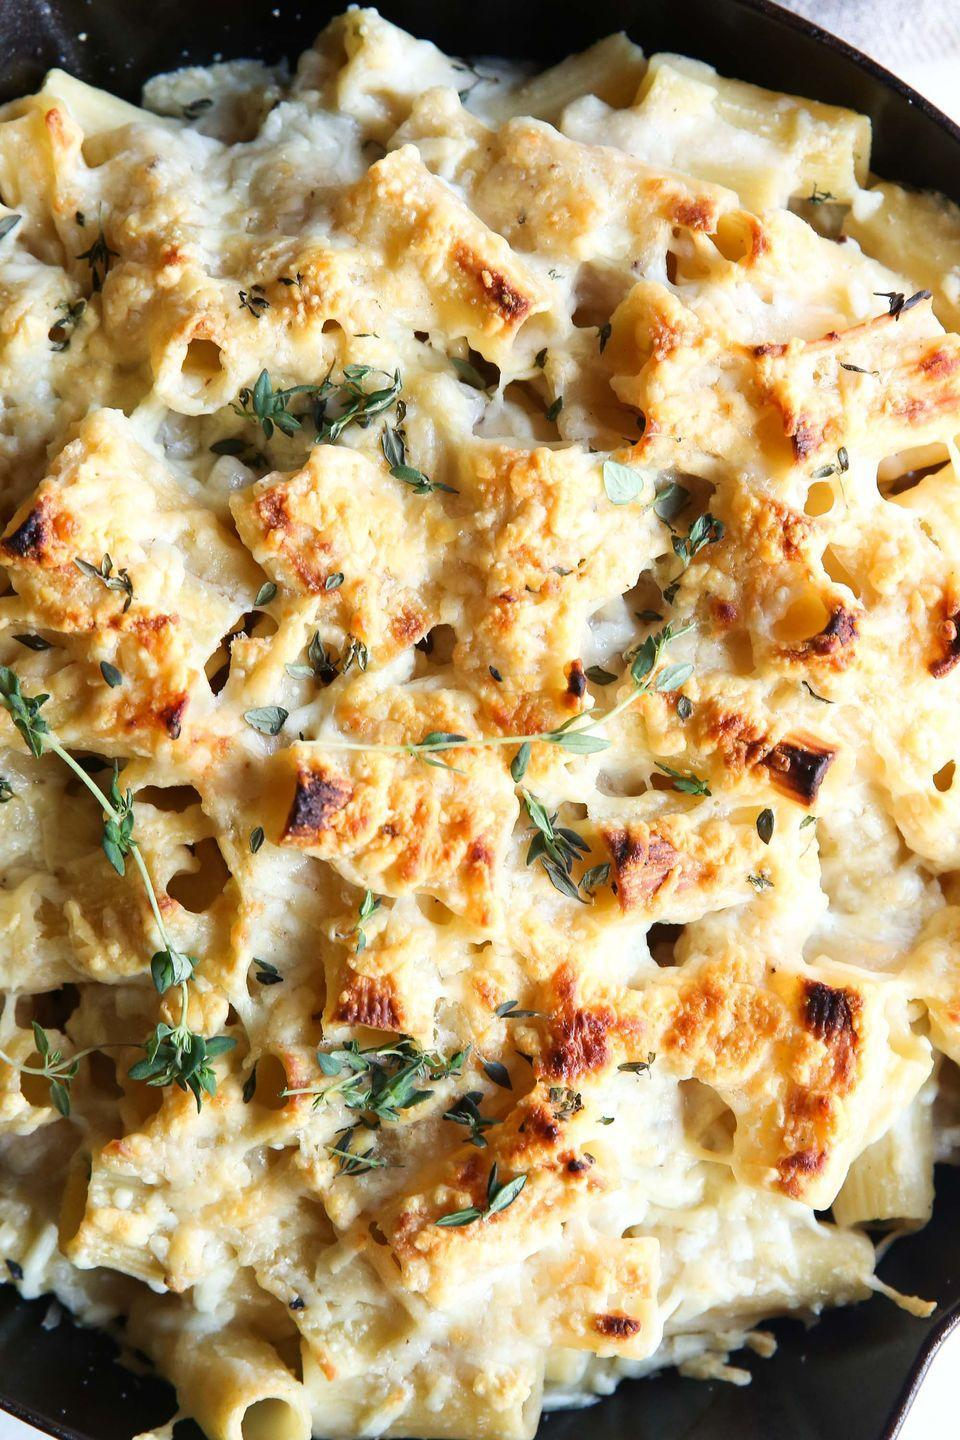 """<p>When it's cold outside, creamy pastas are the only thing that'll do.</p><p>Get the recipe from <a href=""""https://www.delish.com/cooking/recipe-ideas/recipes/a50893/baked-creamy-garlic-rigatoni-recipe/"""" rel=""""nofollow noopener"""" target=""""_blank"""" data-ylk=""""slk:Delish"""" class=""""link rapid-noclick-resp"""">Delish</a>.</p>"""